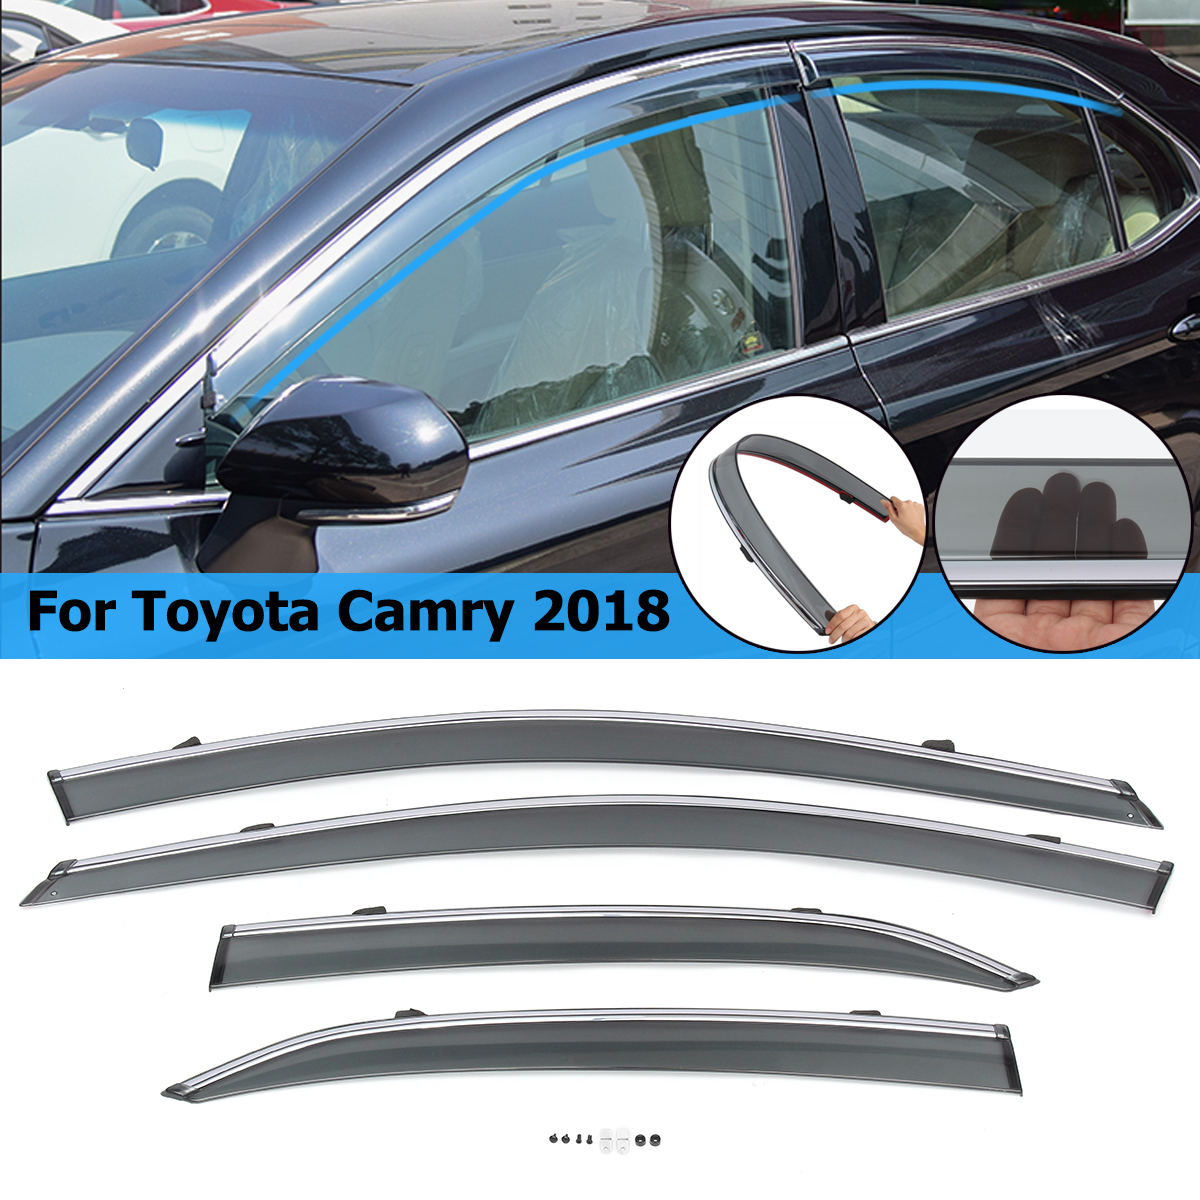 4pcs Car Styling Front & Rear Sun Window Visors Chrome Trim For Toyota Camry 2018 Smoke car styling 1pcs stainless steel chrome front grille front and rear decorative fine barbecue season 2012 2013 for toyota camry